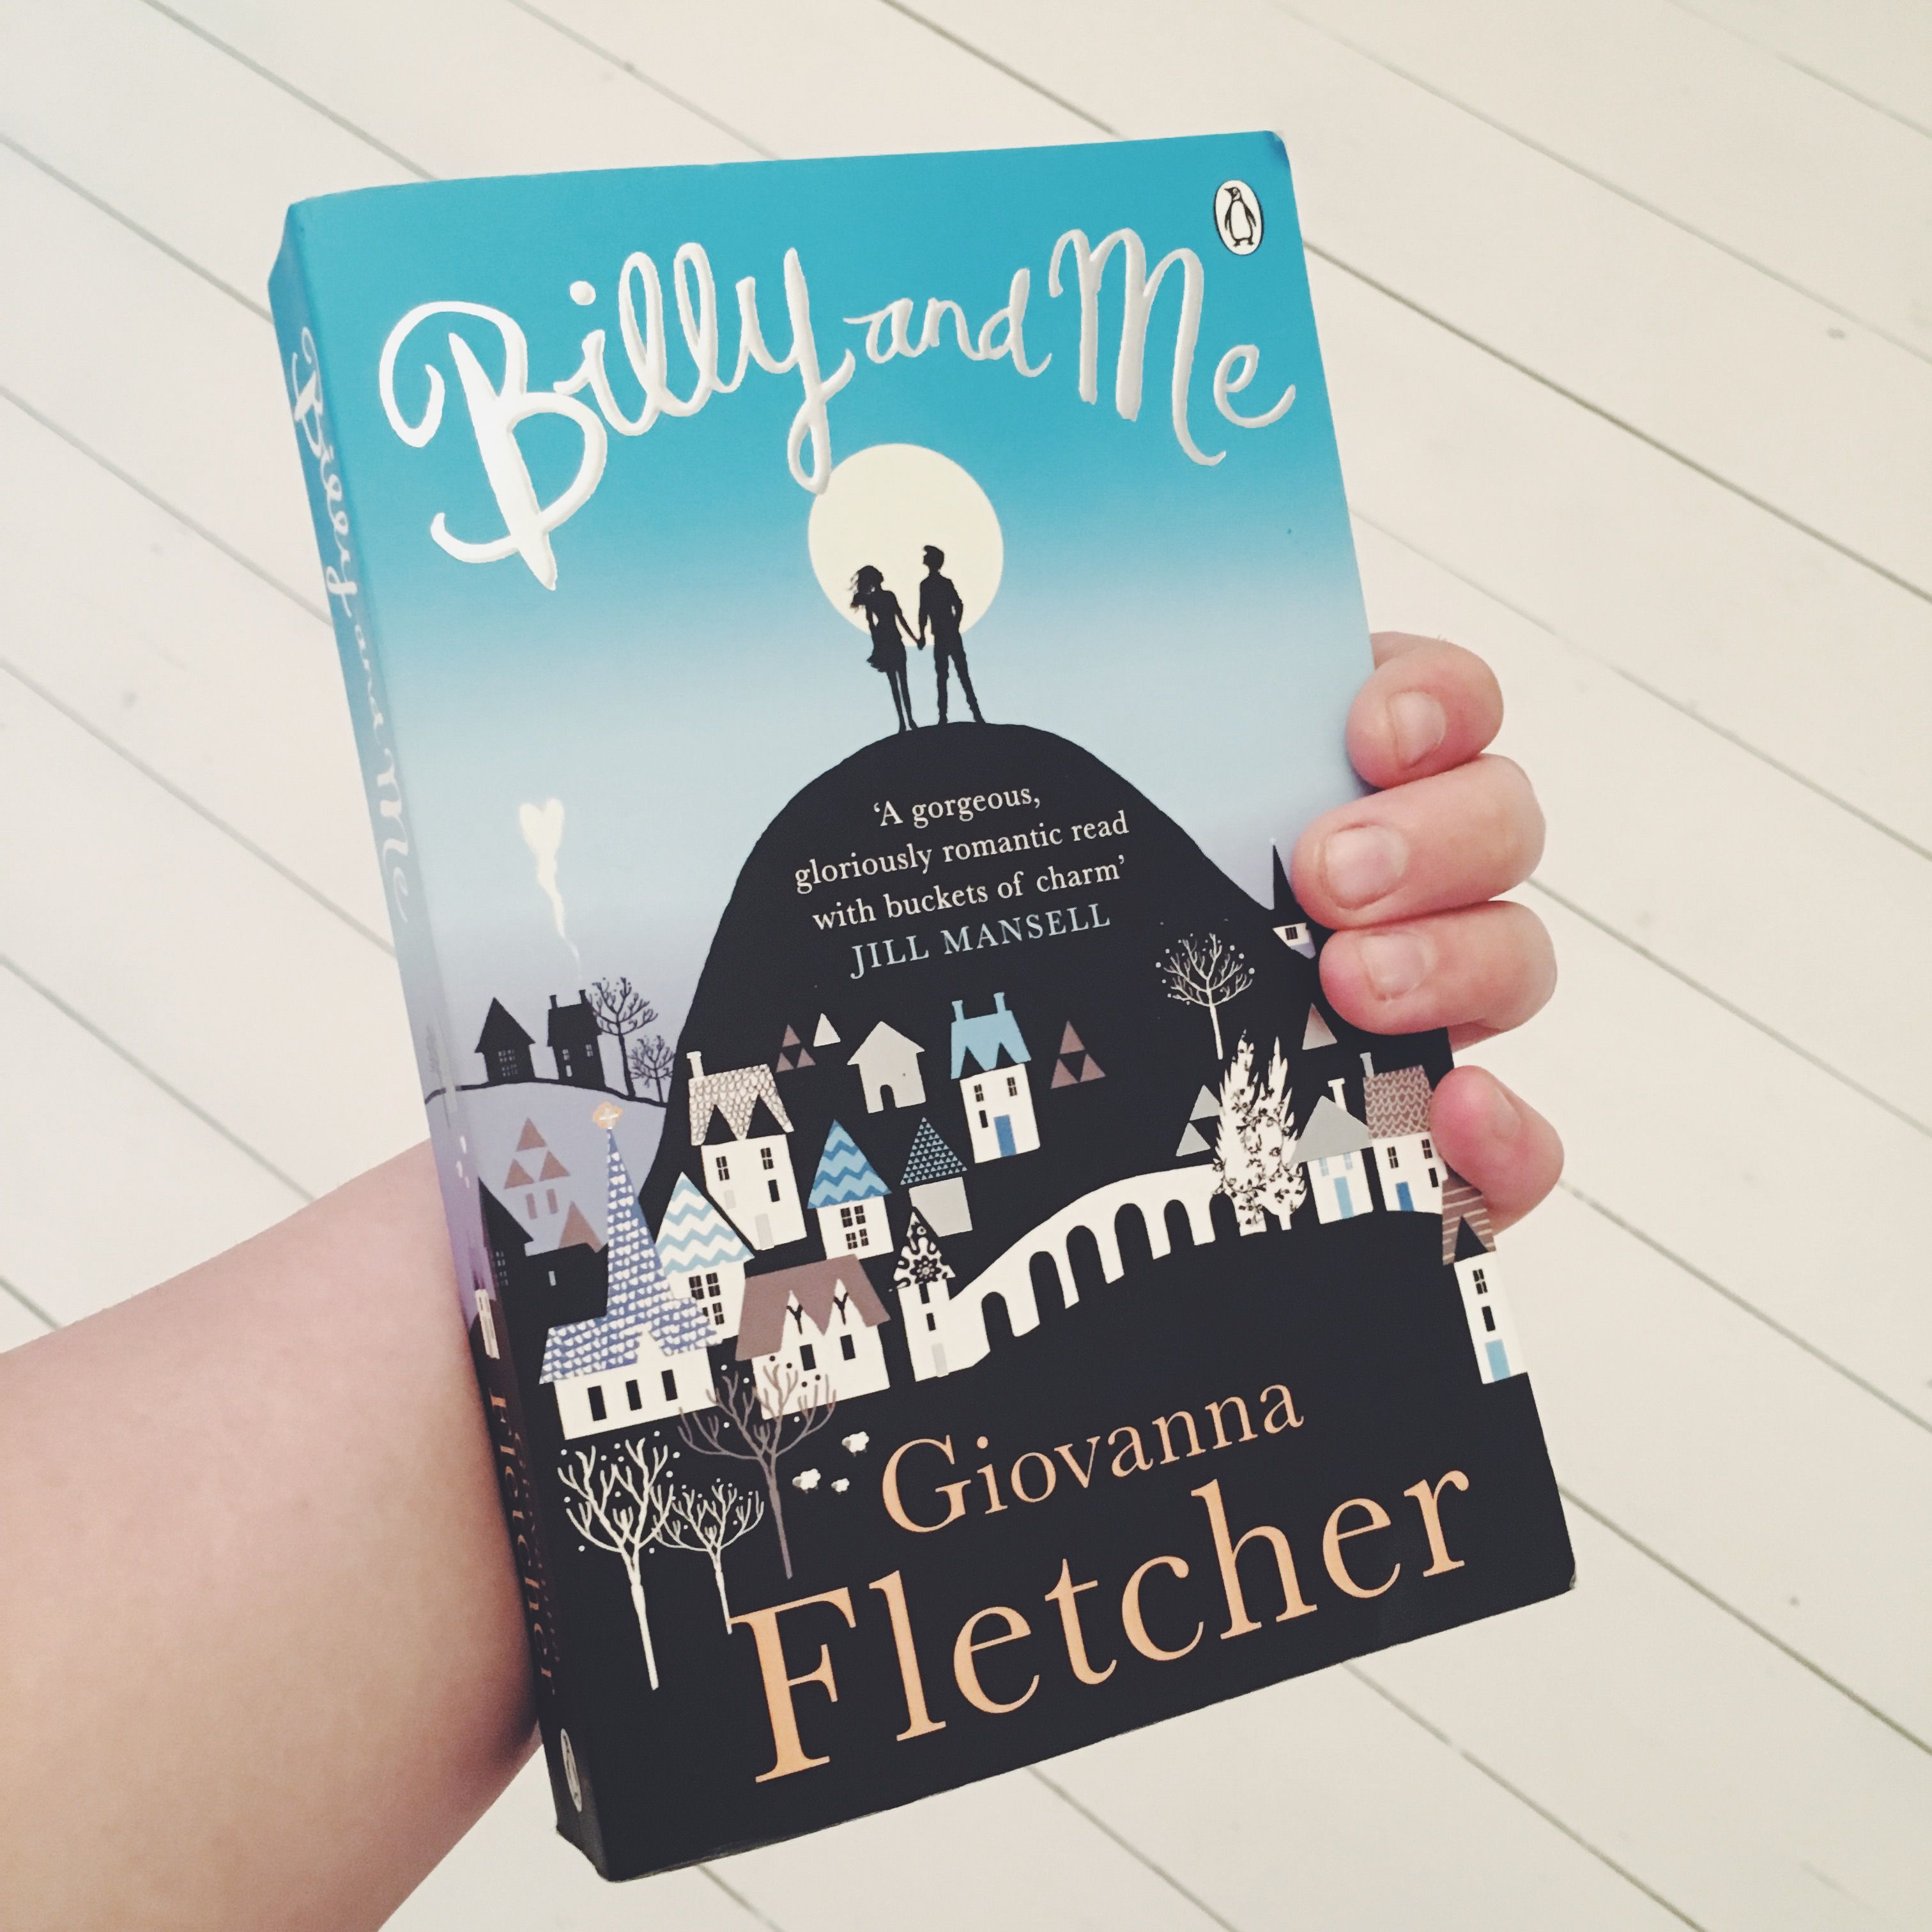 'Billy and Me' by Giovanna Fletcher. One of the best NA